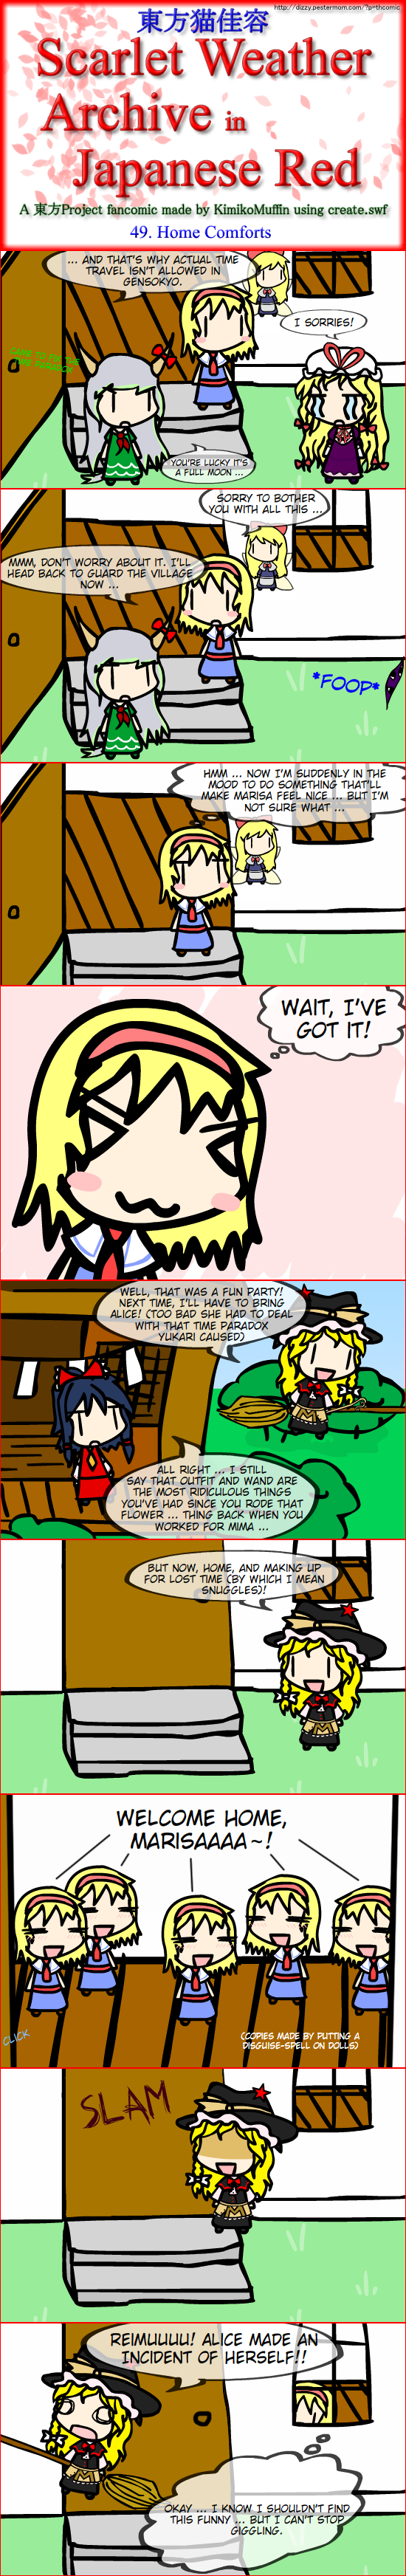 Touhou Nekokayou: Scarlet Weather Archive in Japanese Red #49